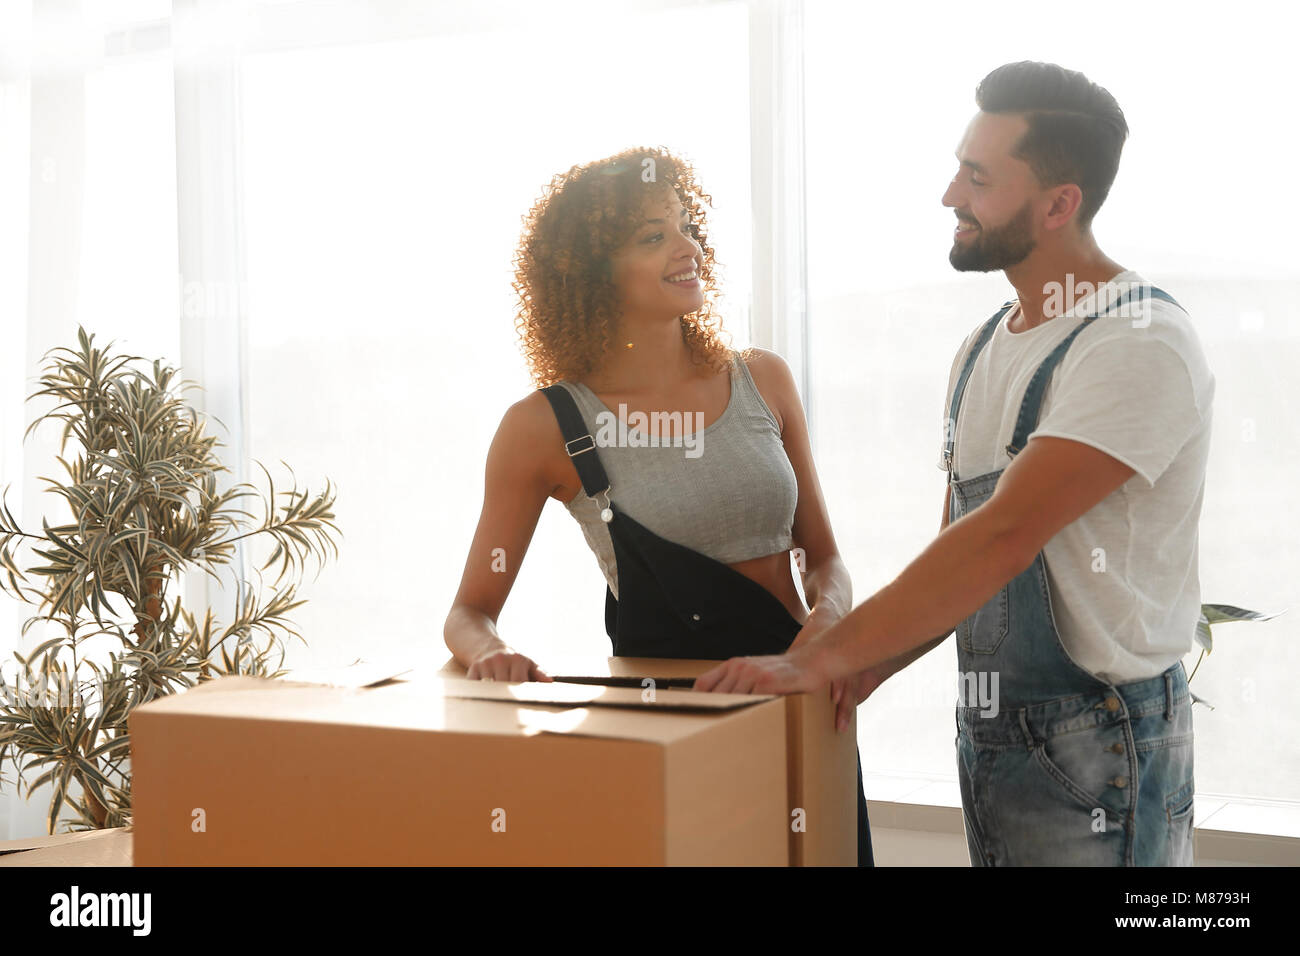 Newlyweds carry boxes in a new apartment. - Stock Image